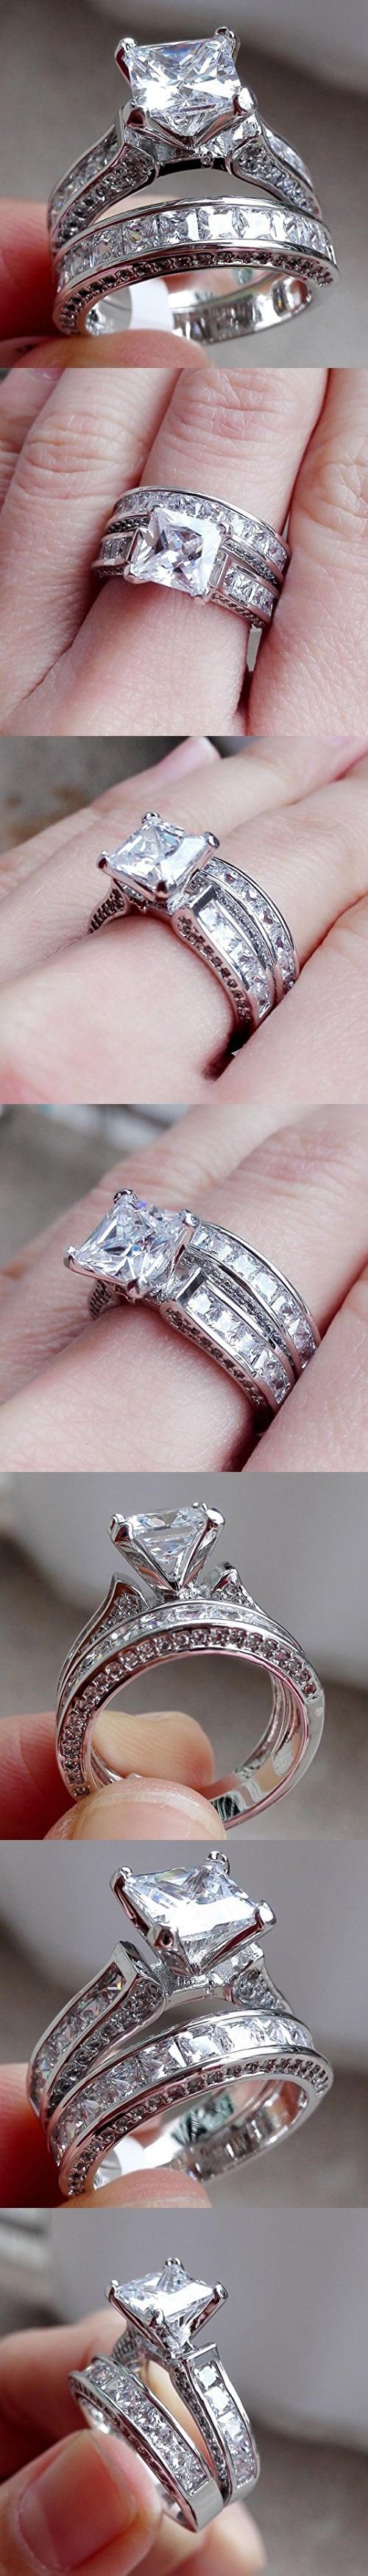 affordable real for accessories clearance modern silver women jewelry plated bridal white gold color sparkle crystal favors rings diamond finger style sets icon design large cheap wedding carat